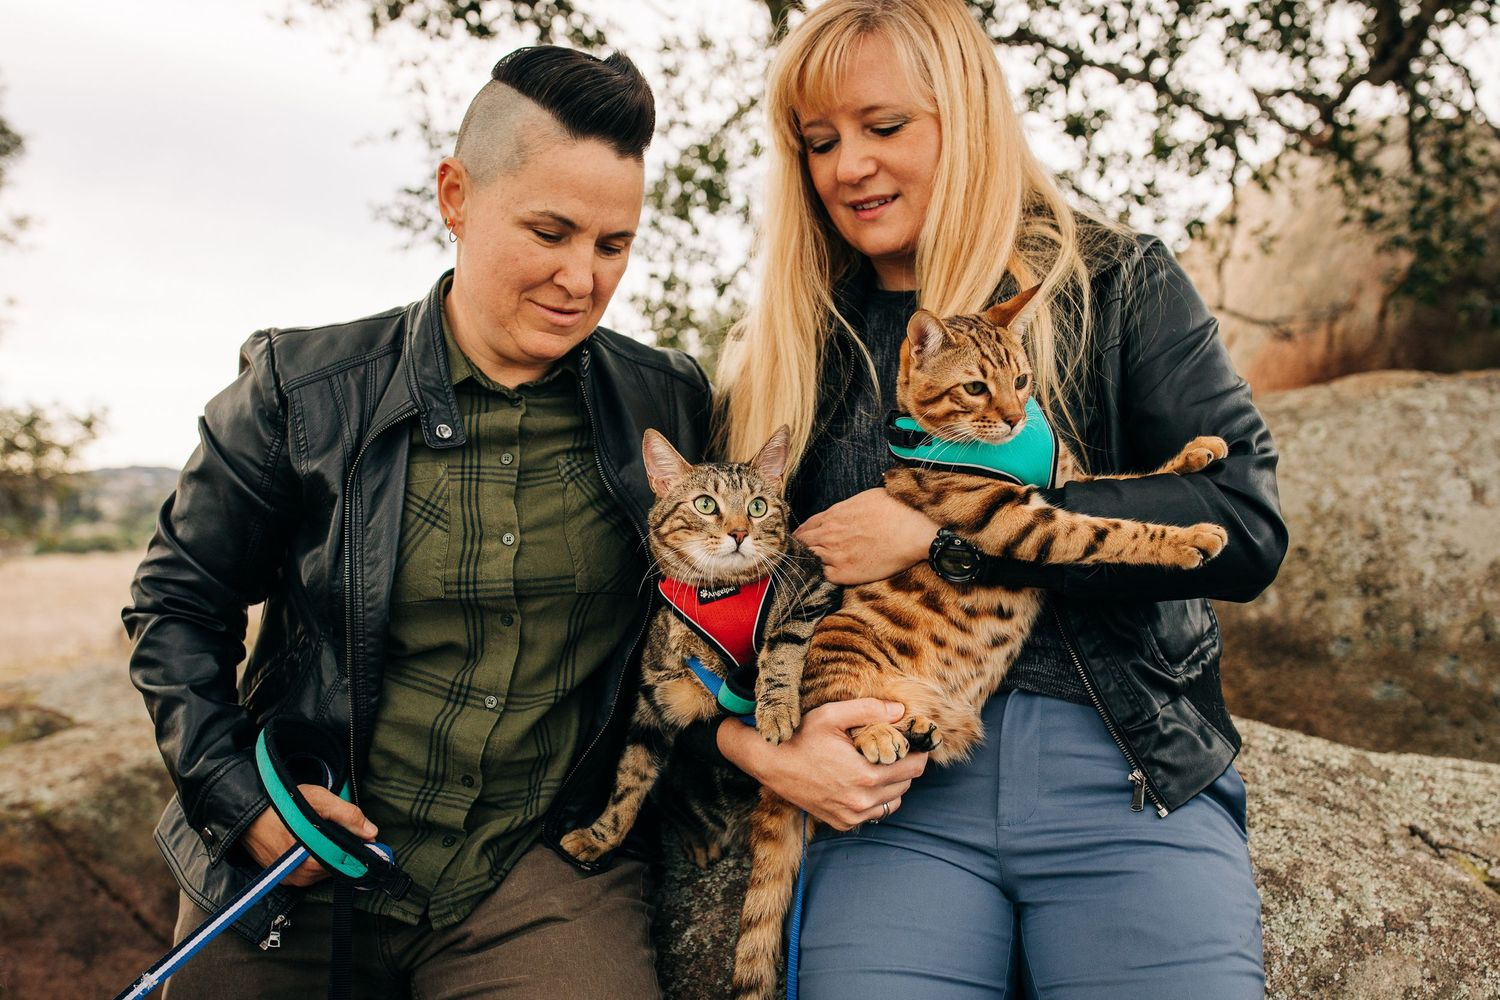 An LQBTQ couple struggles to hold two cats during their family photo shoot in San Diego.